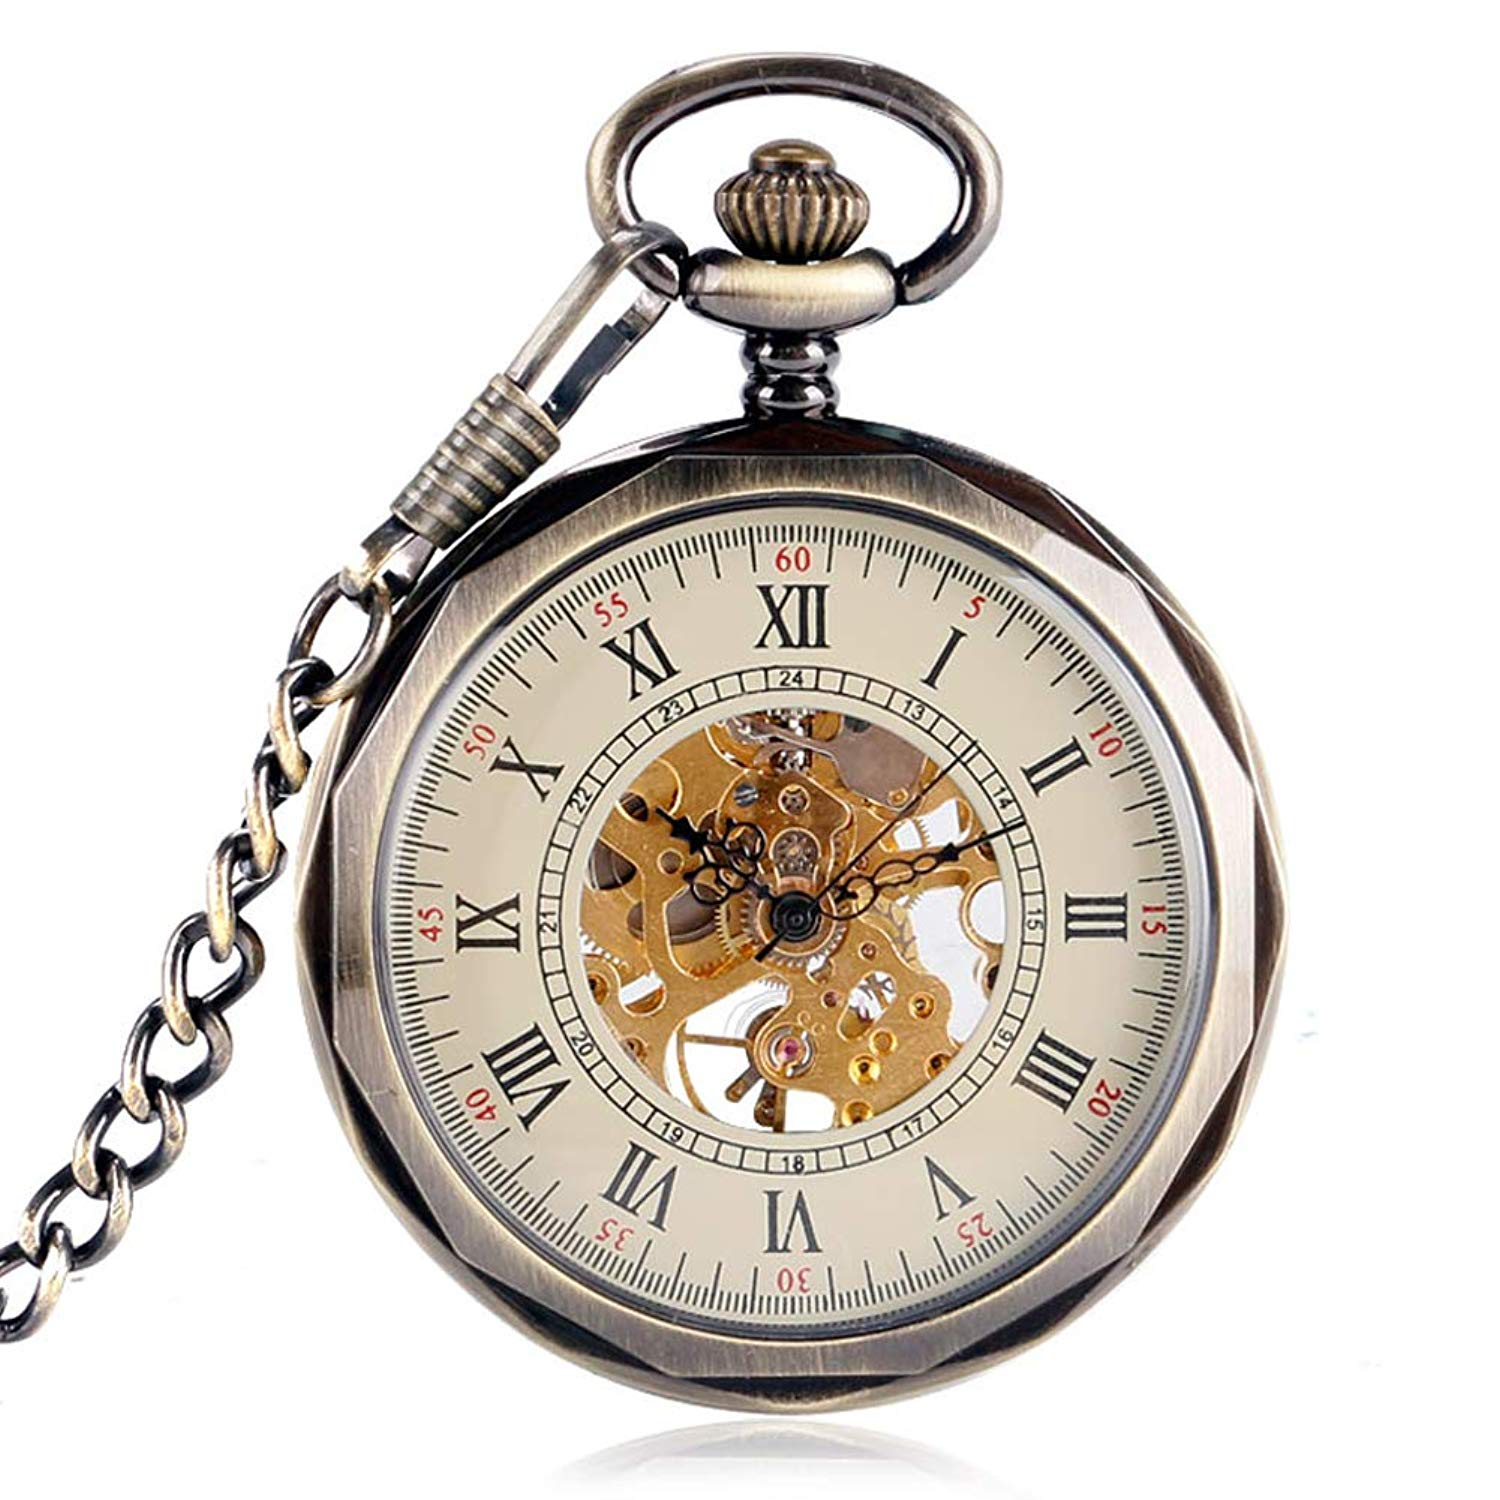 c95b4cf18 Get Quotations · Casual Pocket Watch, Mechanical Hand Wind Pocket Watch for  Men, Vintage Retro Pocket Watch